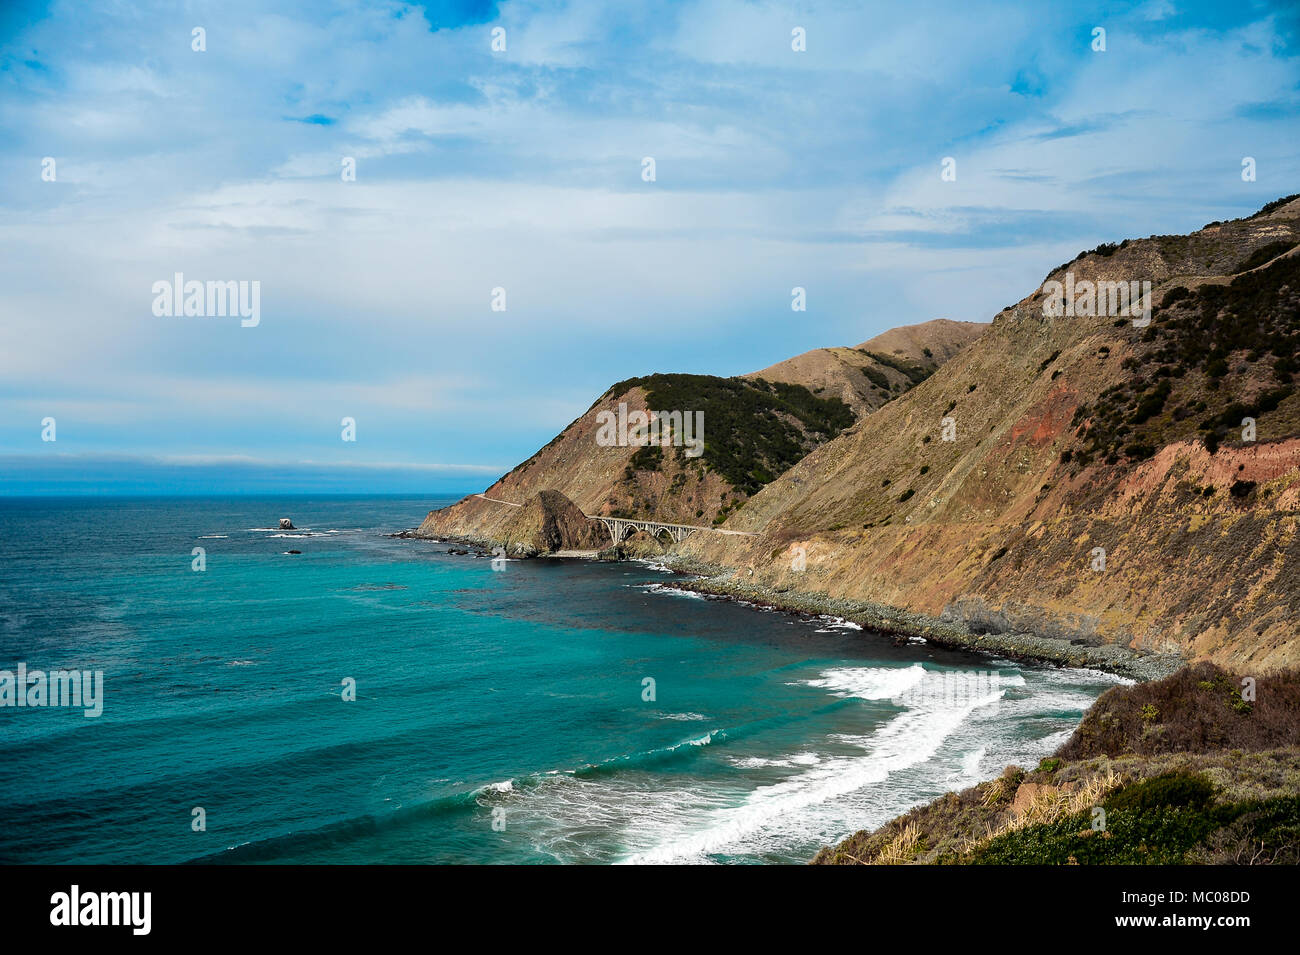 Pacific coast views along Cabrillo Highway to Big Creek Cove bridge, California. Beautiful landscape, cloudy skies, rocky cliffs and aquamarine sea. - Stock Image